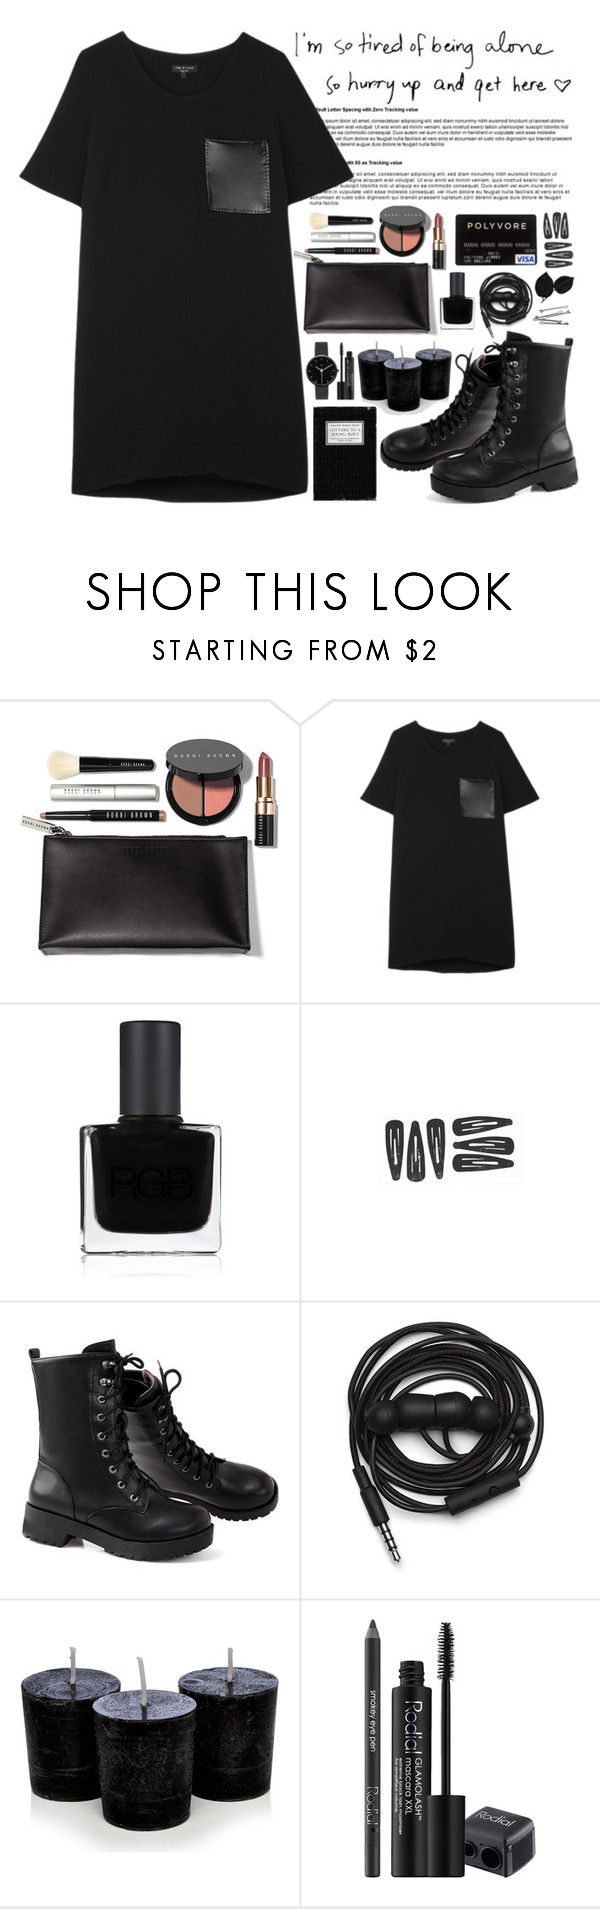 """""""tired of beeing alone"""" by nellylein ❤ liked on Polyvore featuring Bobbi Brown Cosmetics, rag & bone, RGB Cosmetics, Urbanears, Rodial, BOBBY and I Love Ugly"""